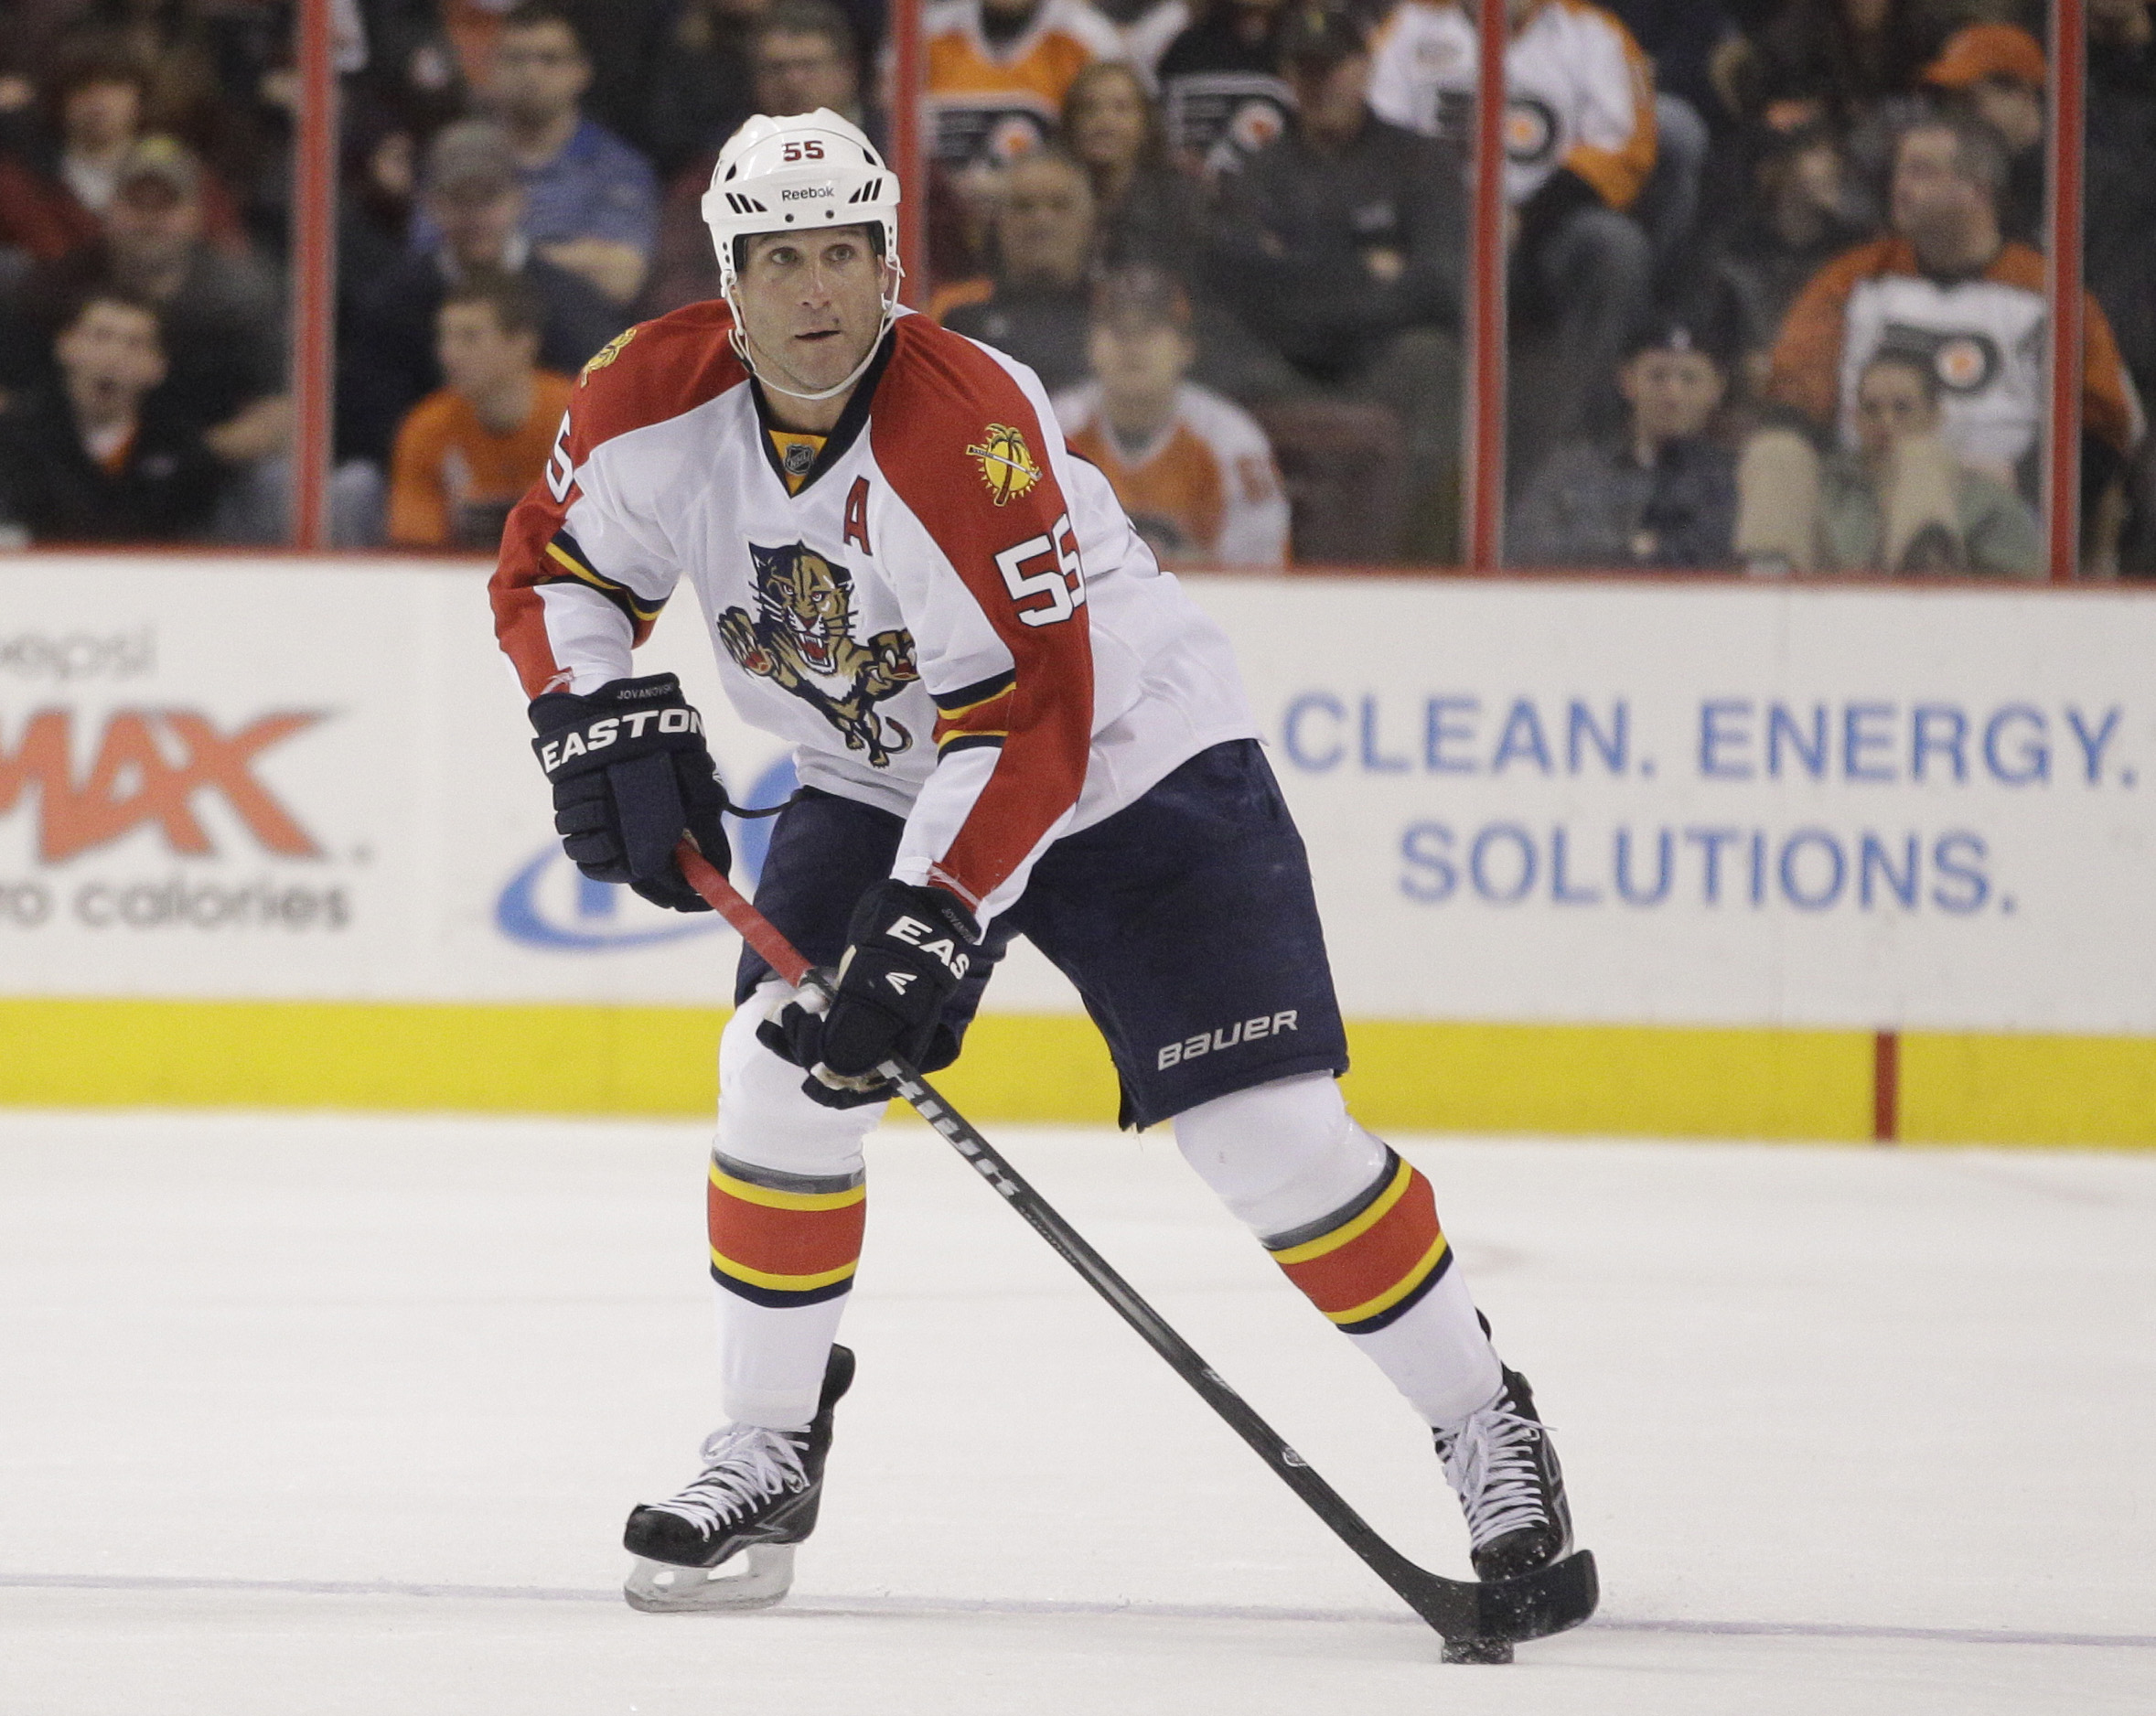 In this March 8, 2012 file photo, Florida Panthers' Ed Jovanovski handles the puck during an NHL hockey game against the Philadelphia Flyers, in Philadelphia. The Florida Panthers have activated defenseman and captain Jovanovski from injured reserve and say he'll make his season debut Saturday, Jan. 4, 2014, against Nashville